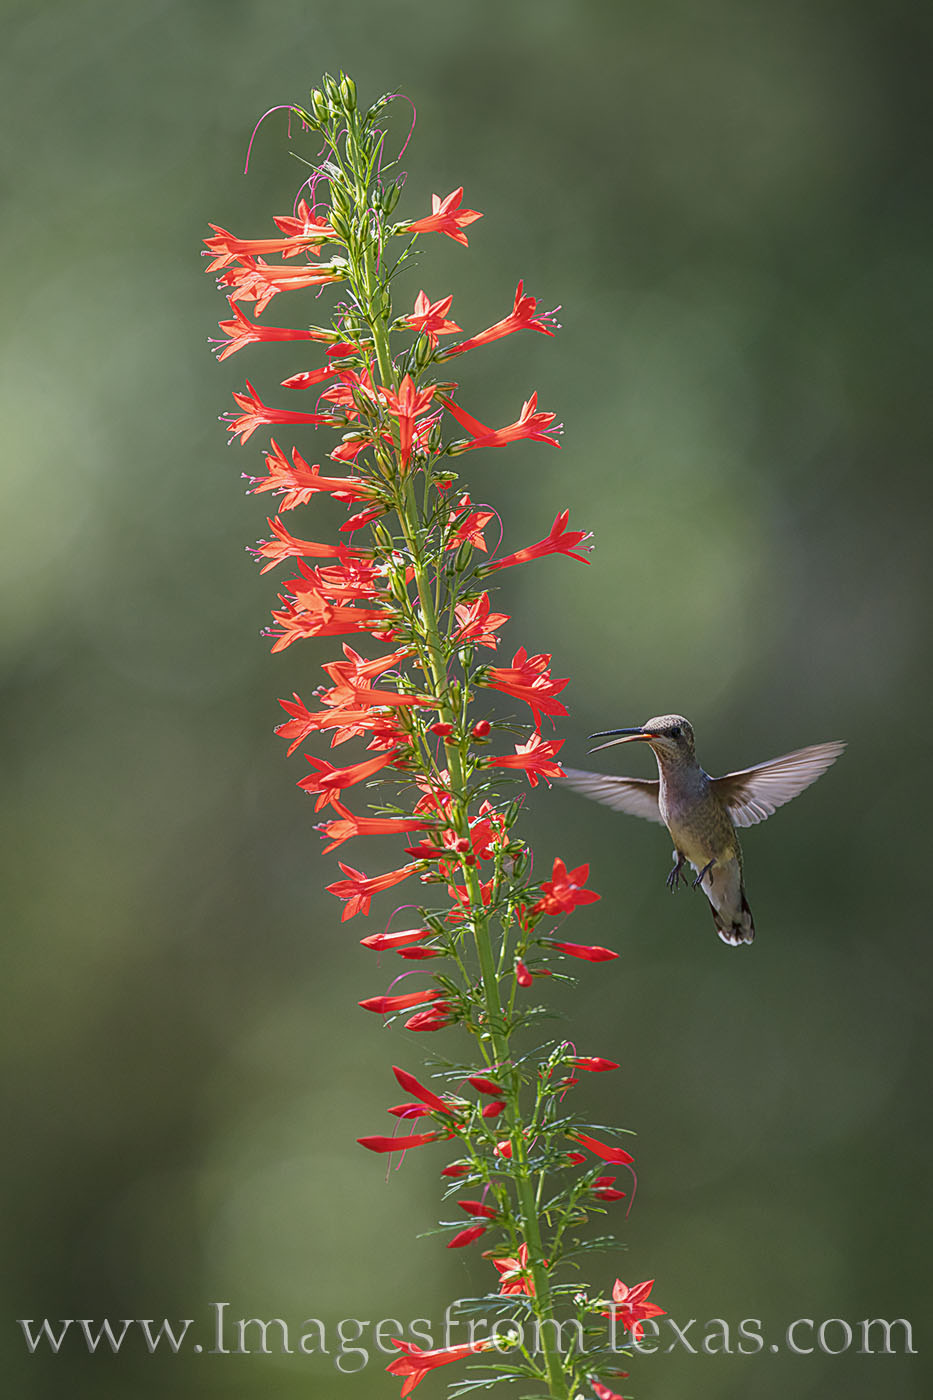 hummingbirds, red texas star, texas wildflowers, texas hill country, spring, summer, texas hummingbirds, photo